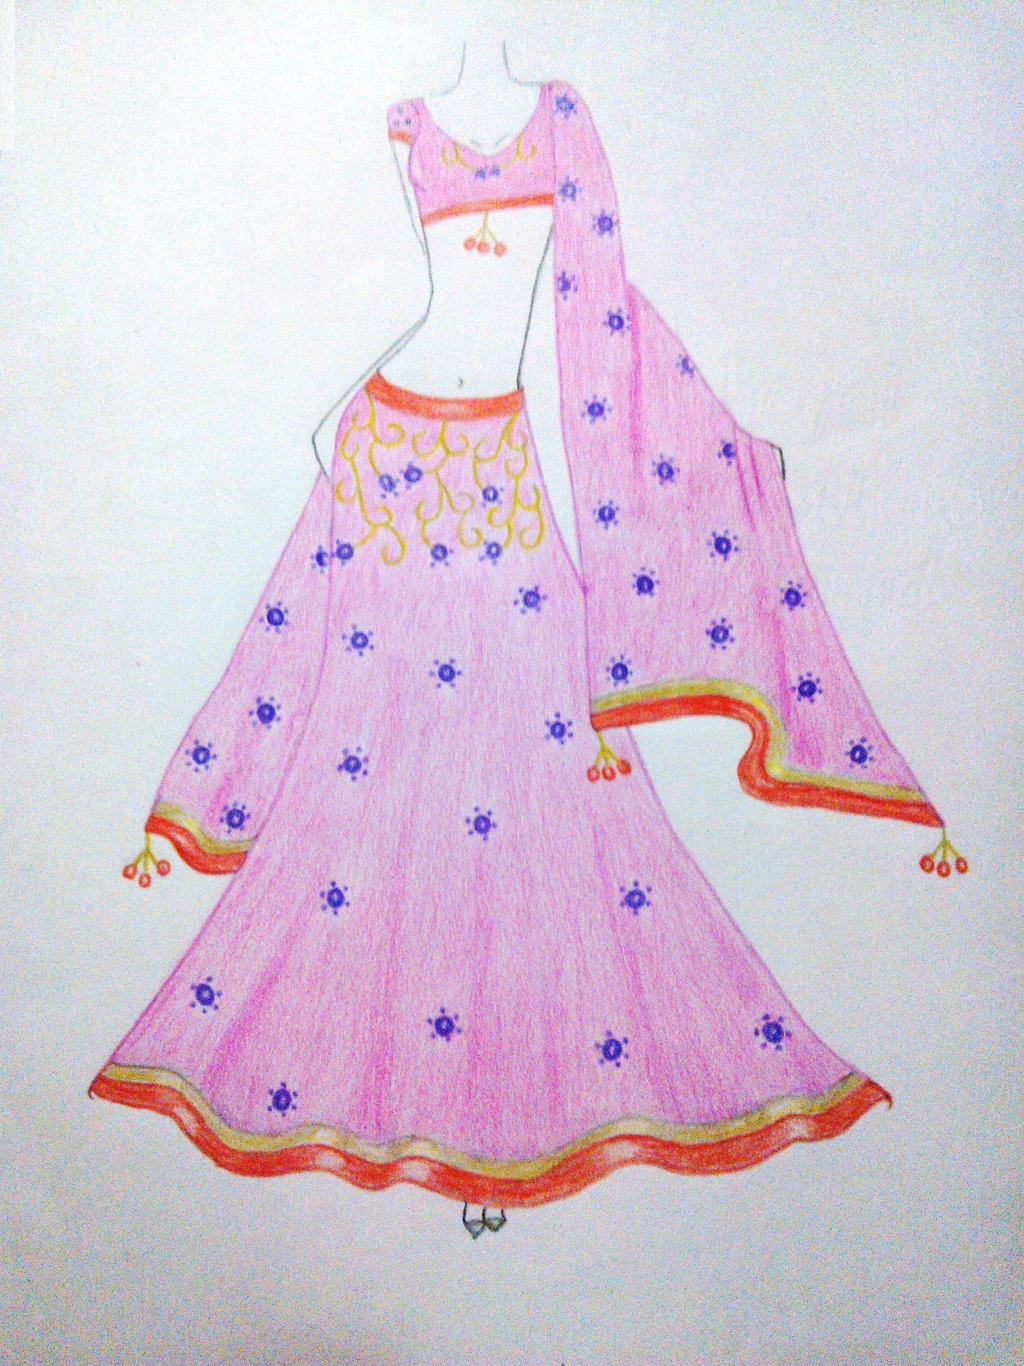 Indian dress sketch by moumita28 on DeviantArt